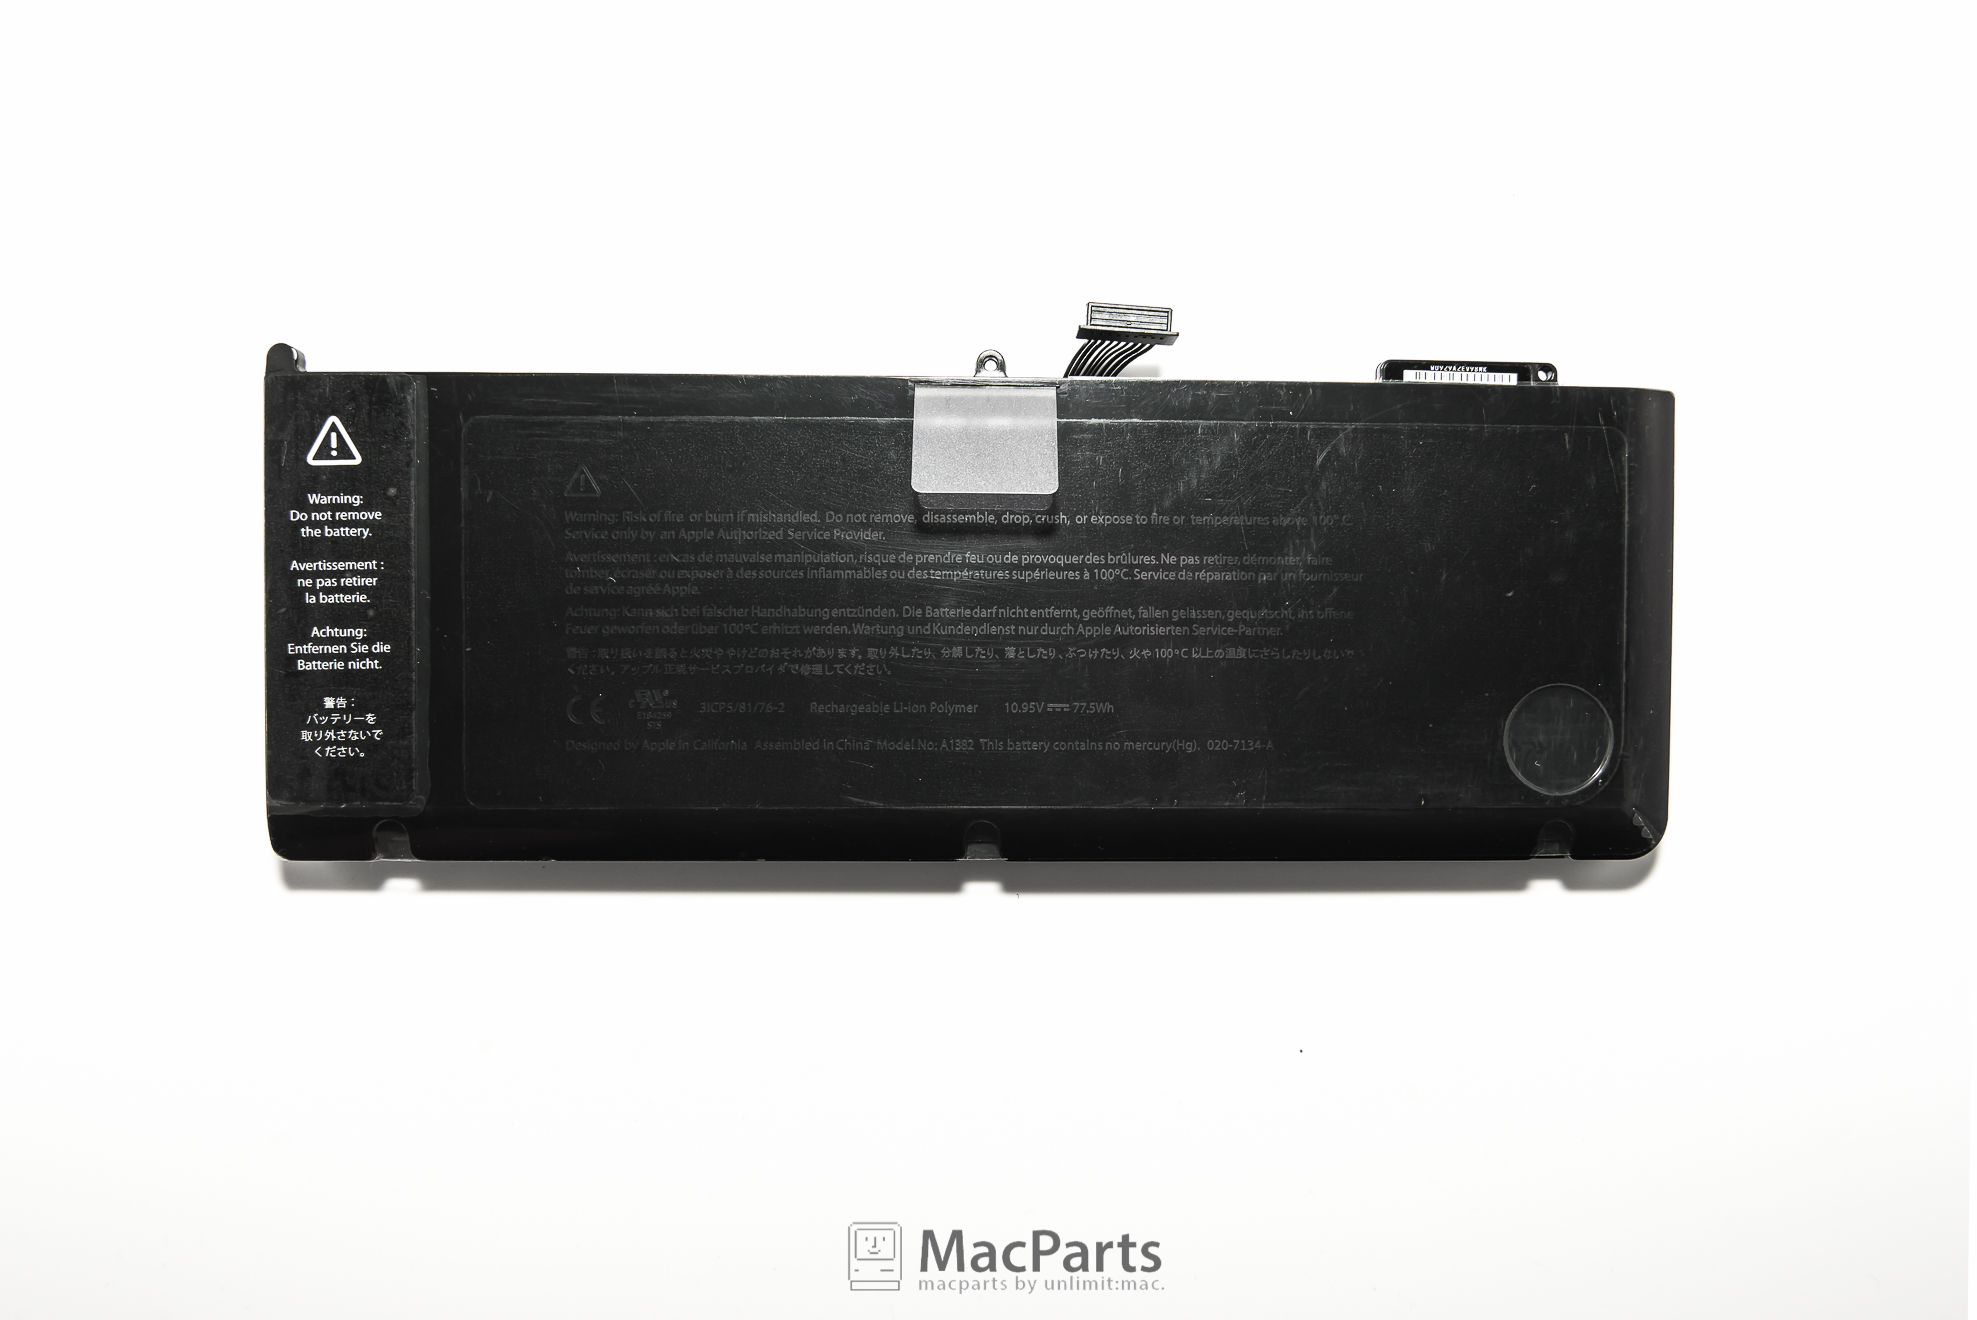 661-5844 70% Rechargeable Battery For - 15-inch MacBookPro (Unibody) (Early 2011/Late 2011/Mid 2012) สภาพ 70% A1382